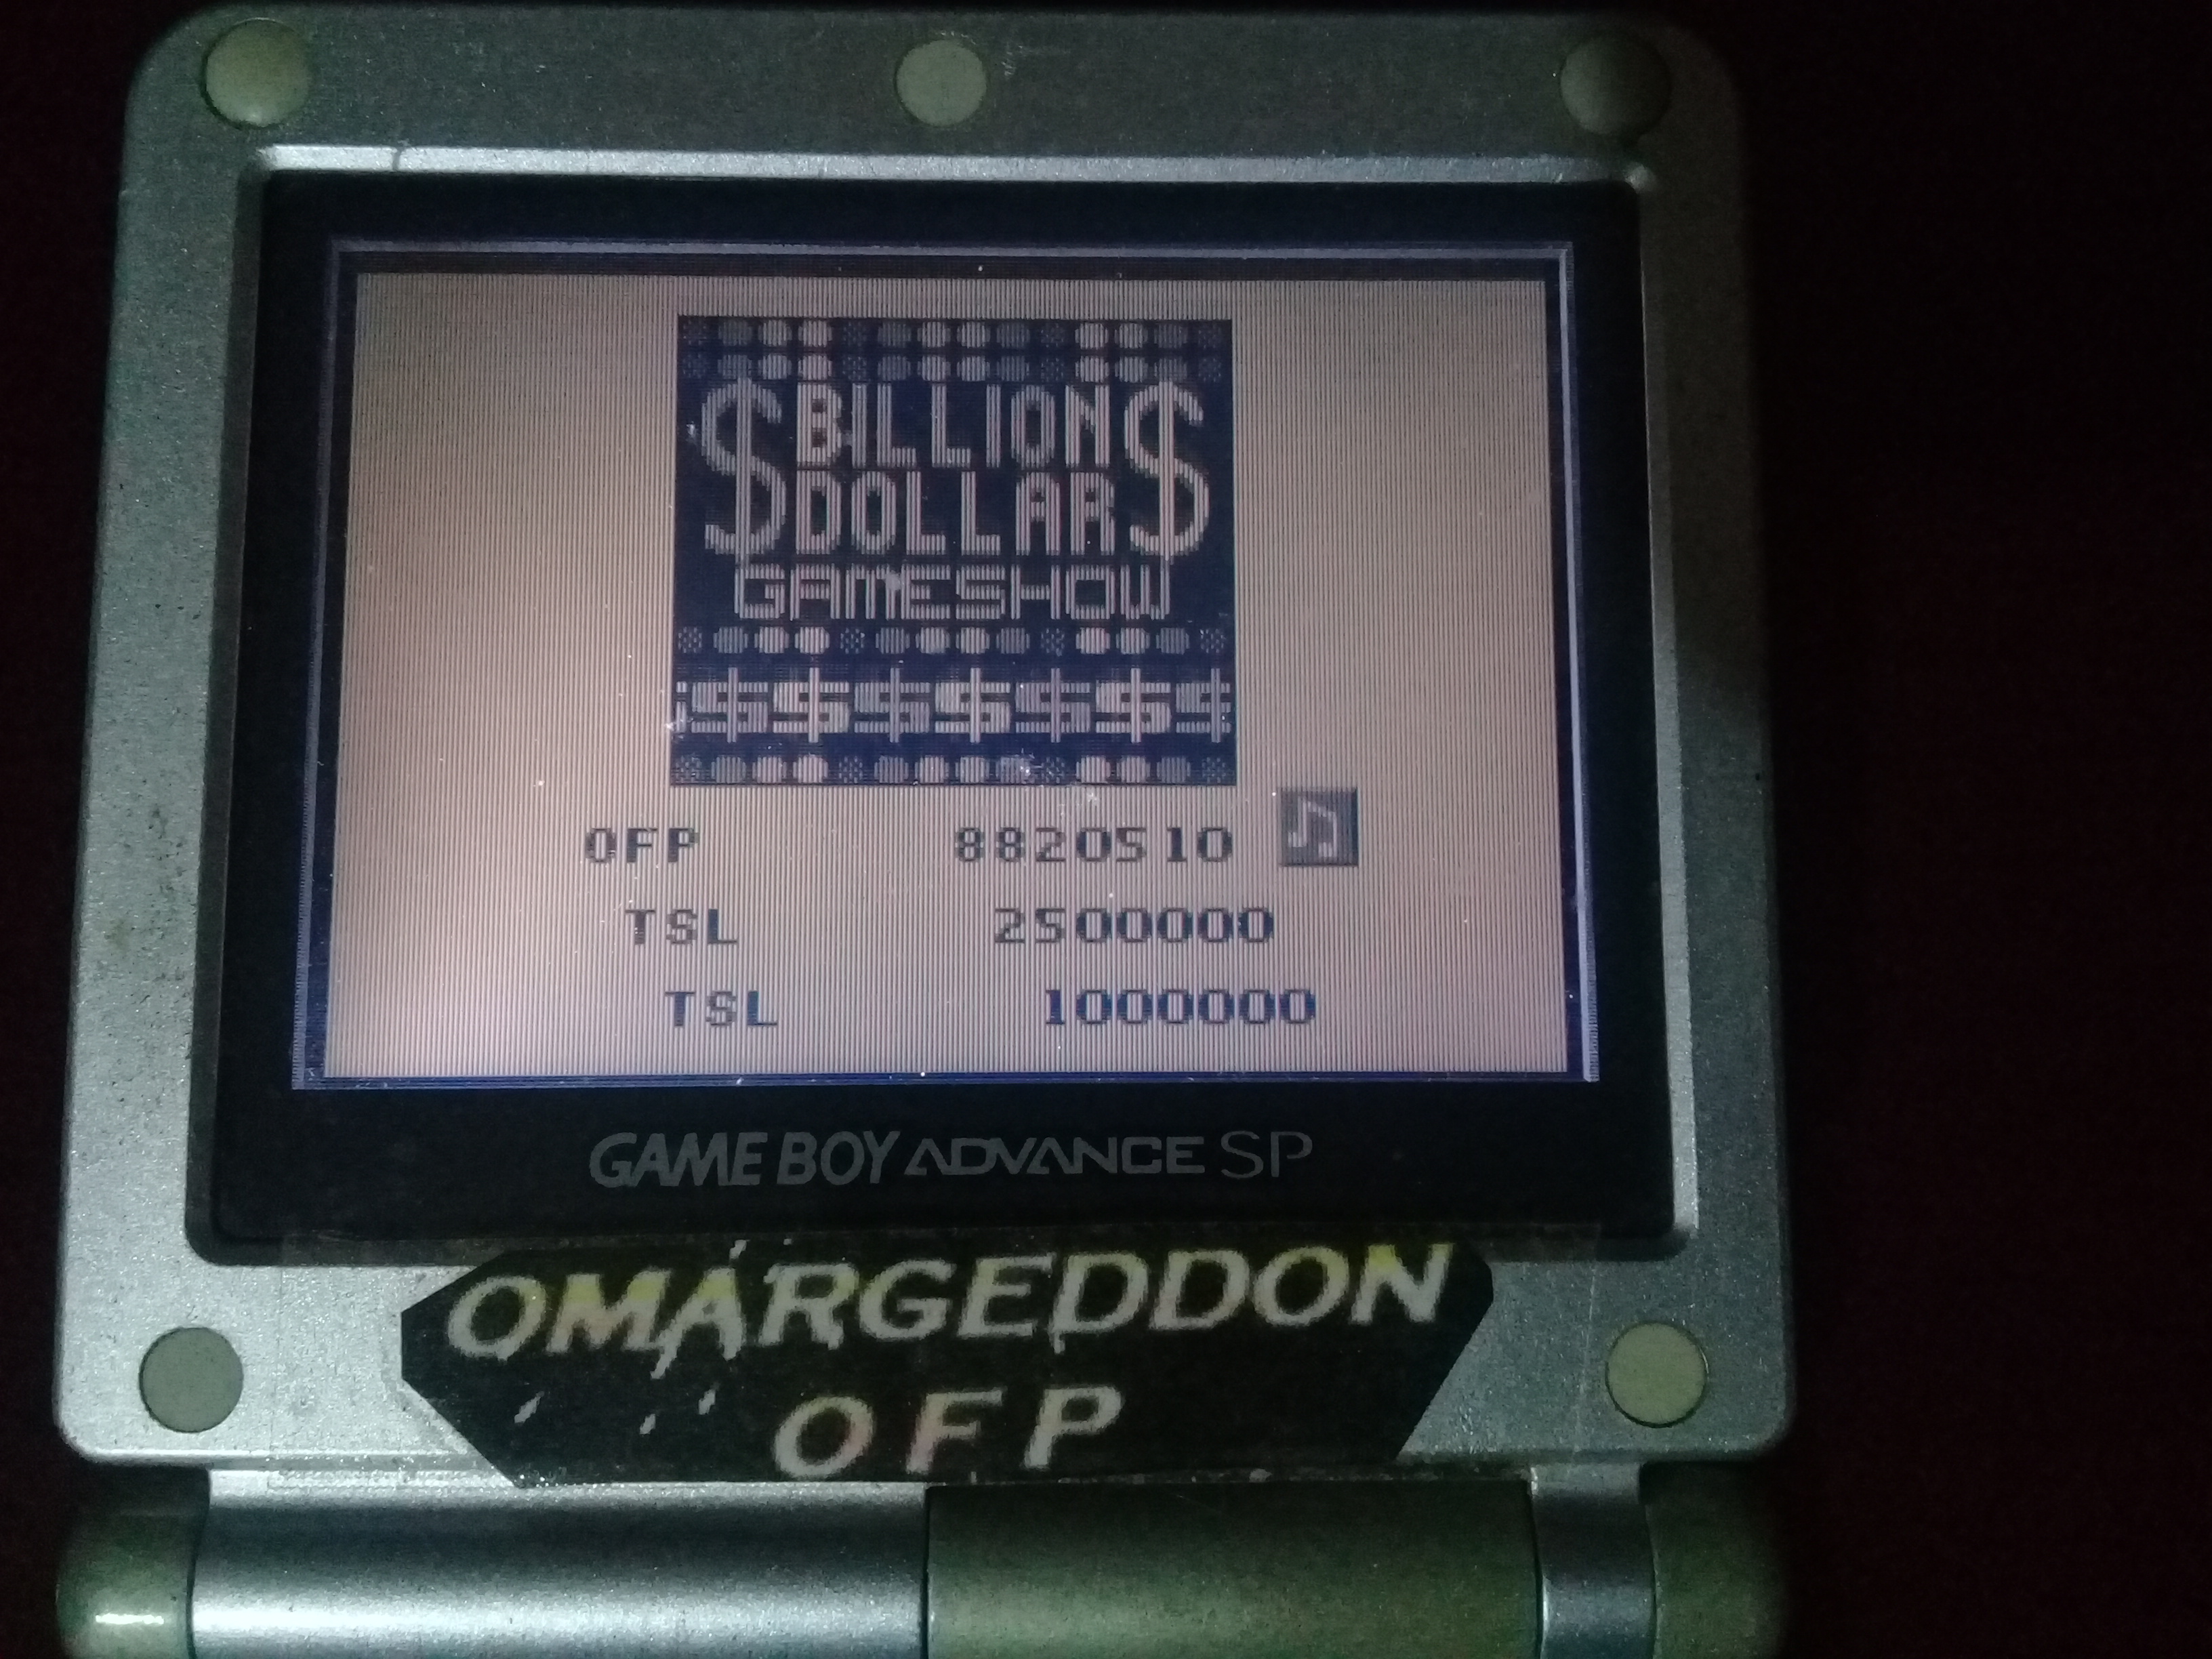 omargeddon: Pinball Fantasies: Billion Dollar Gameshow (Game Boy) 8,820,510 points on 2020-05-08 20:31:00